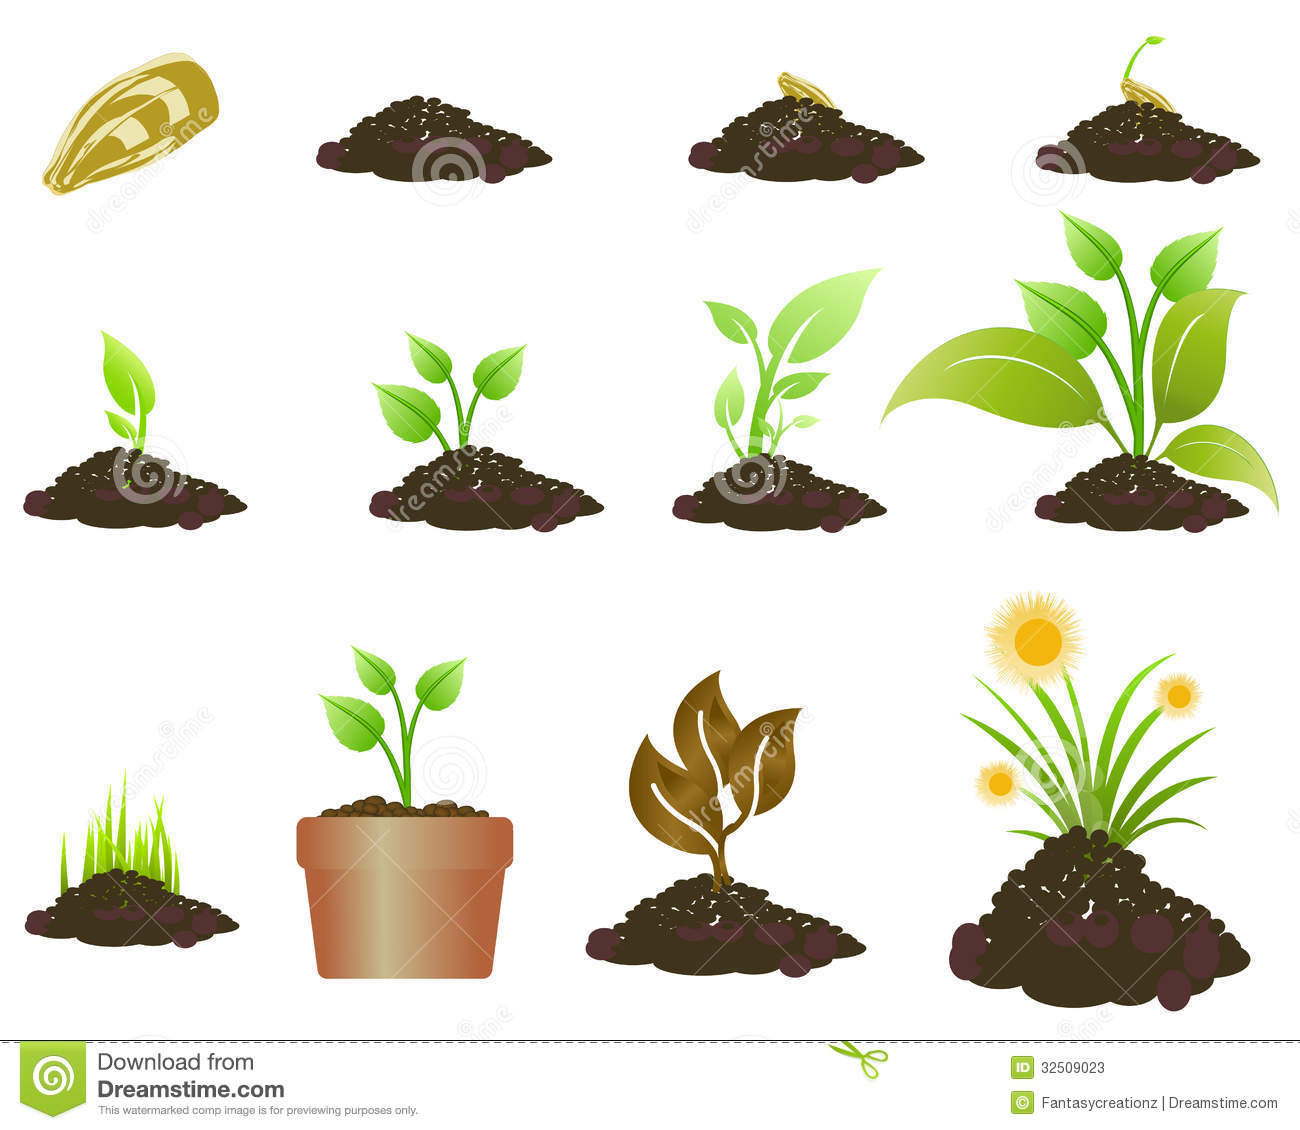 Plant Growing Stock Photos - Image: 32509023